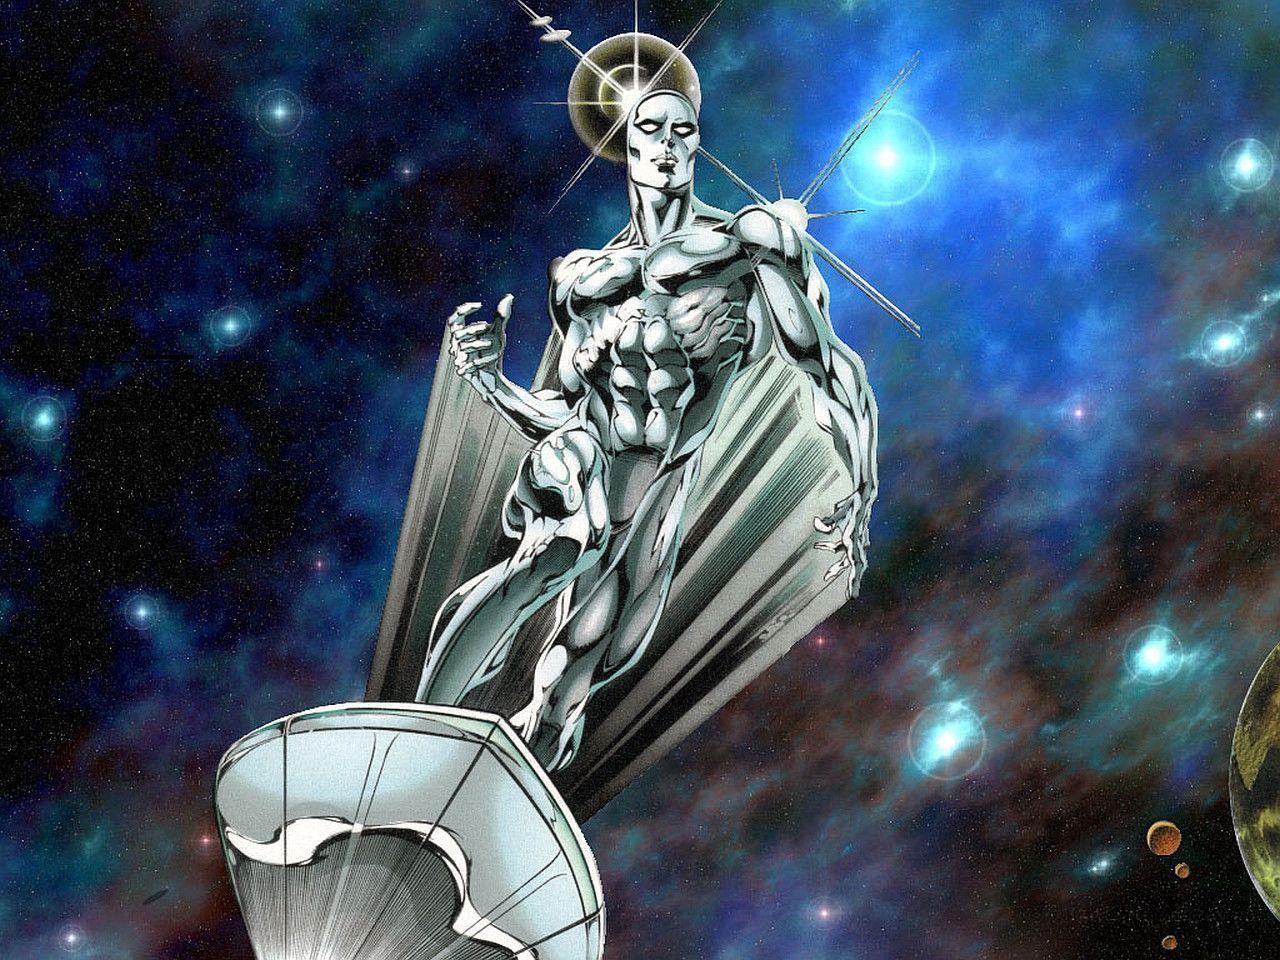 Silver Surfer Computer Wallpapers, Desktop Backgrounds 1280x960 Id